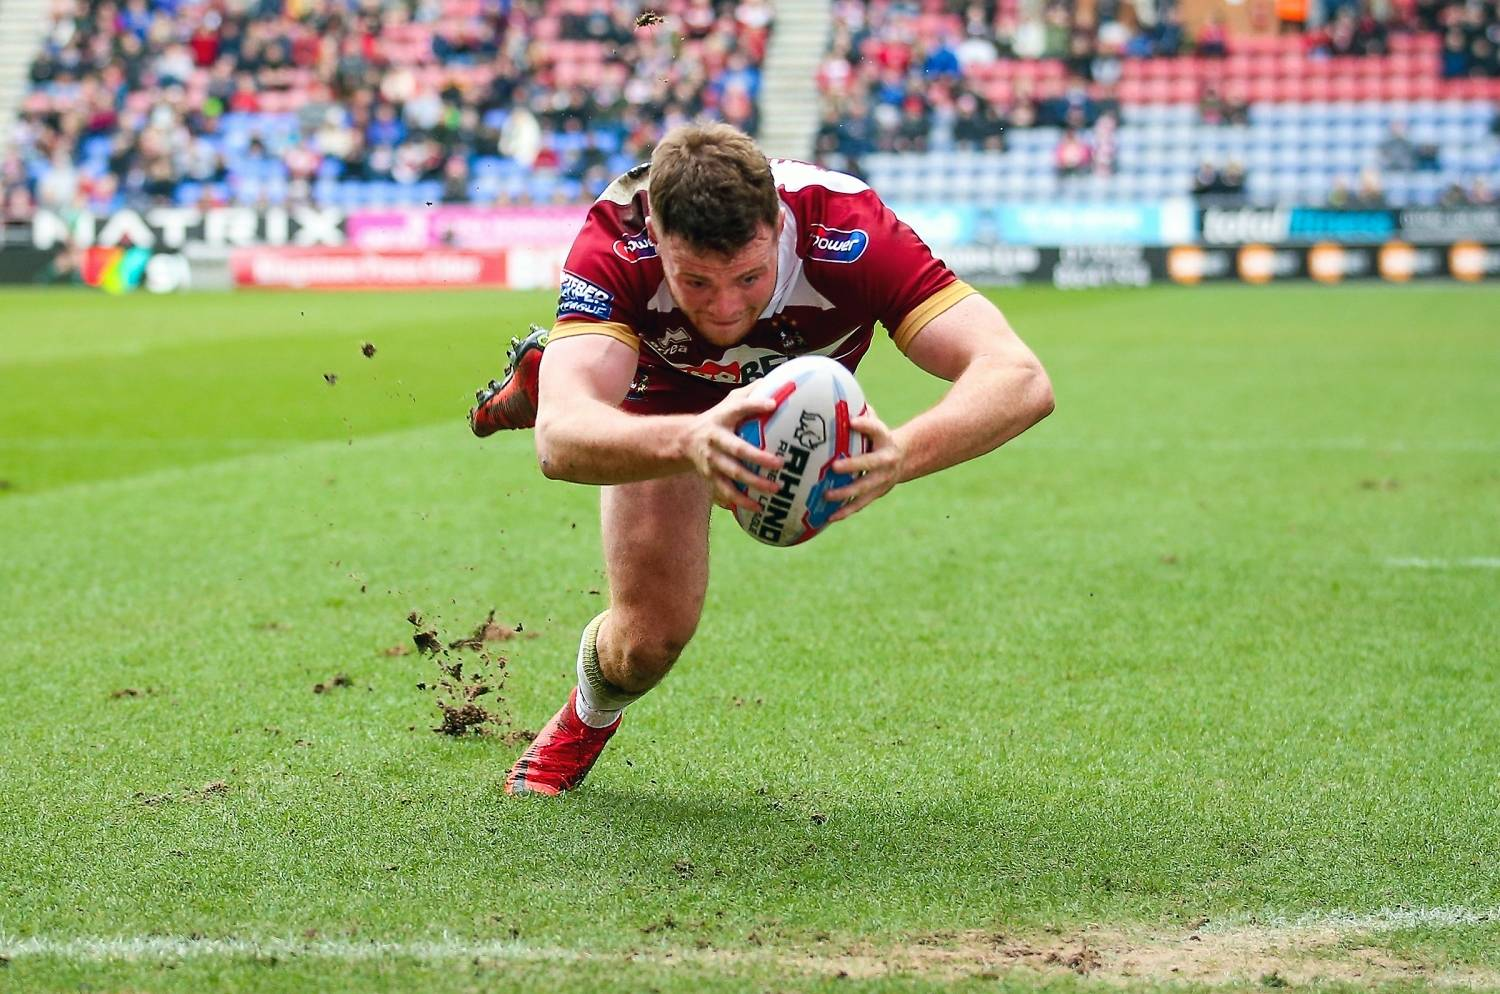 Burgess hat-trick hands Trin first loss